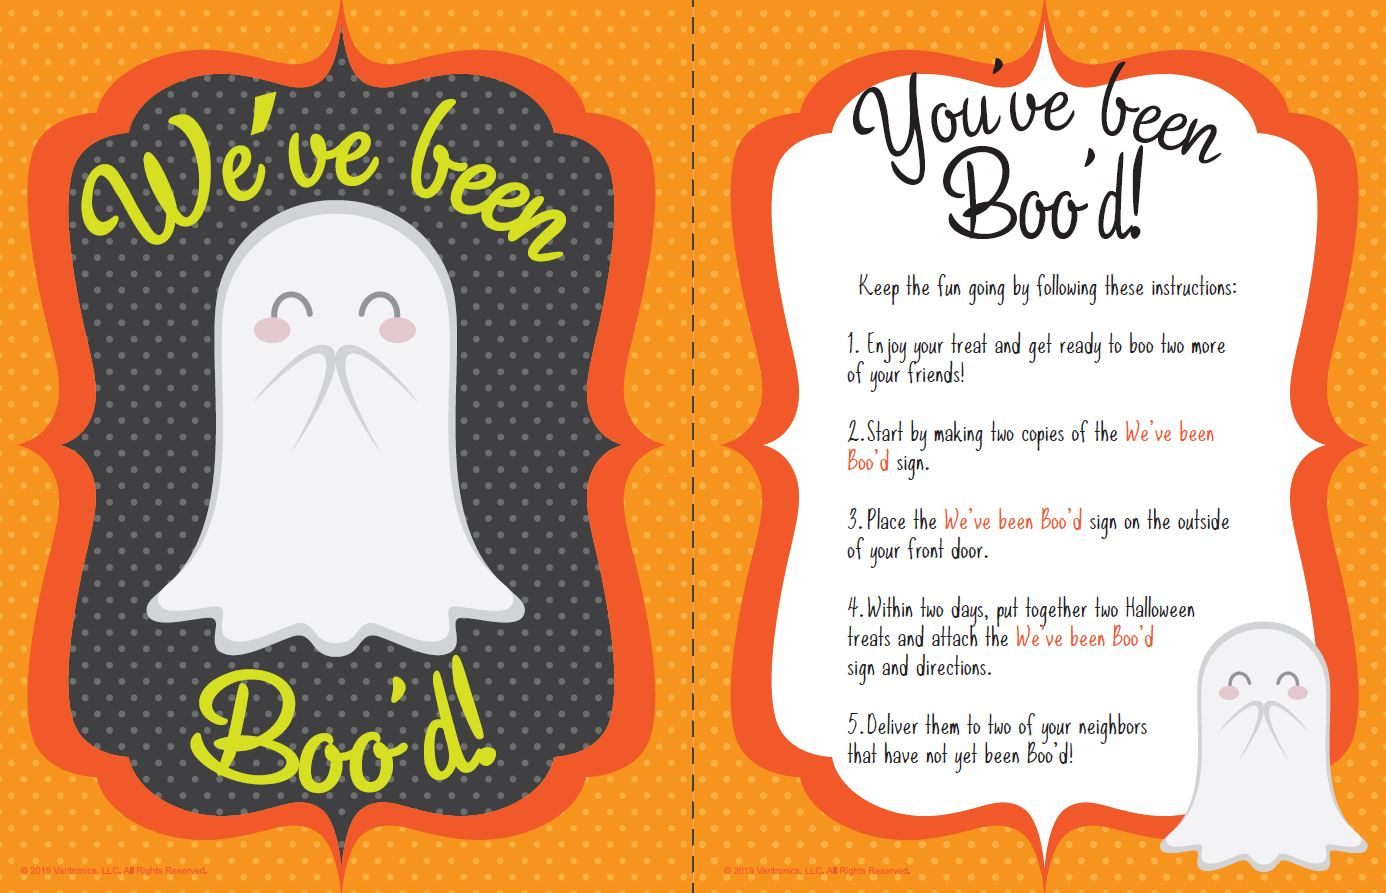 youve been boo_d poster